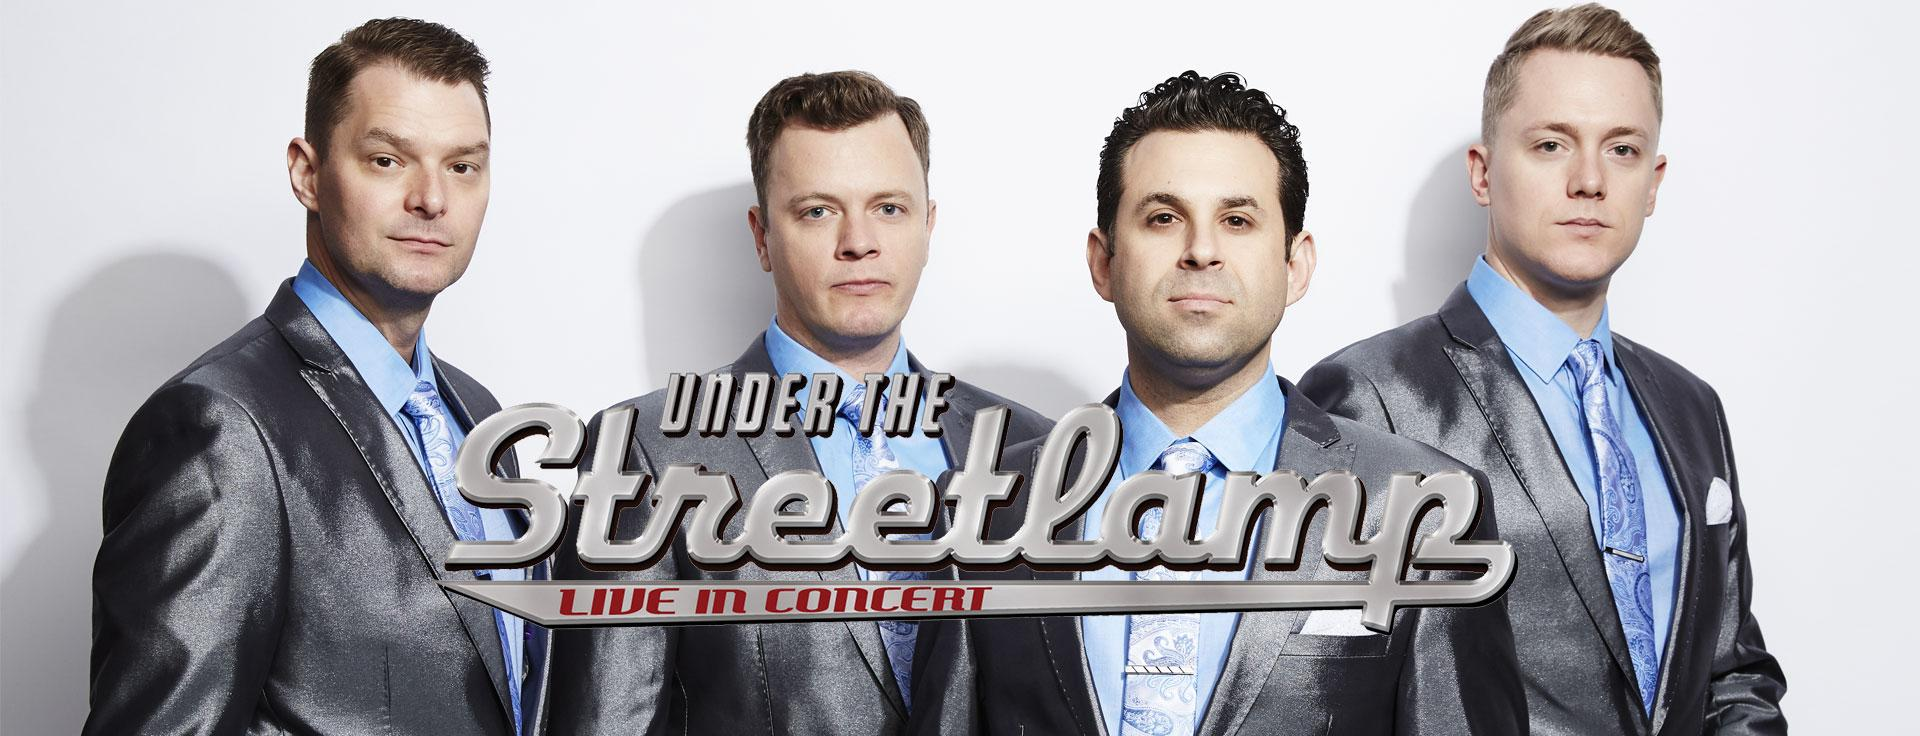 Under The Streetlamp Live in Concert